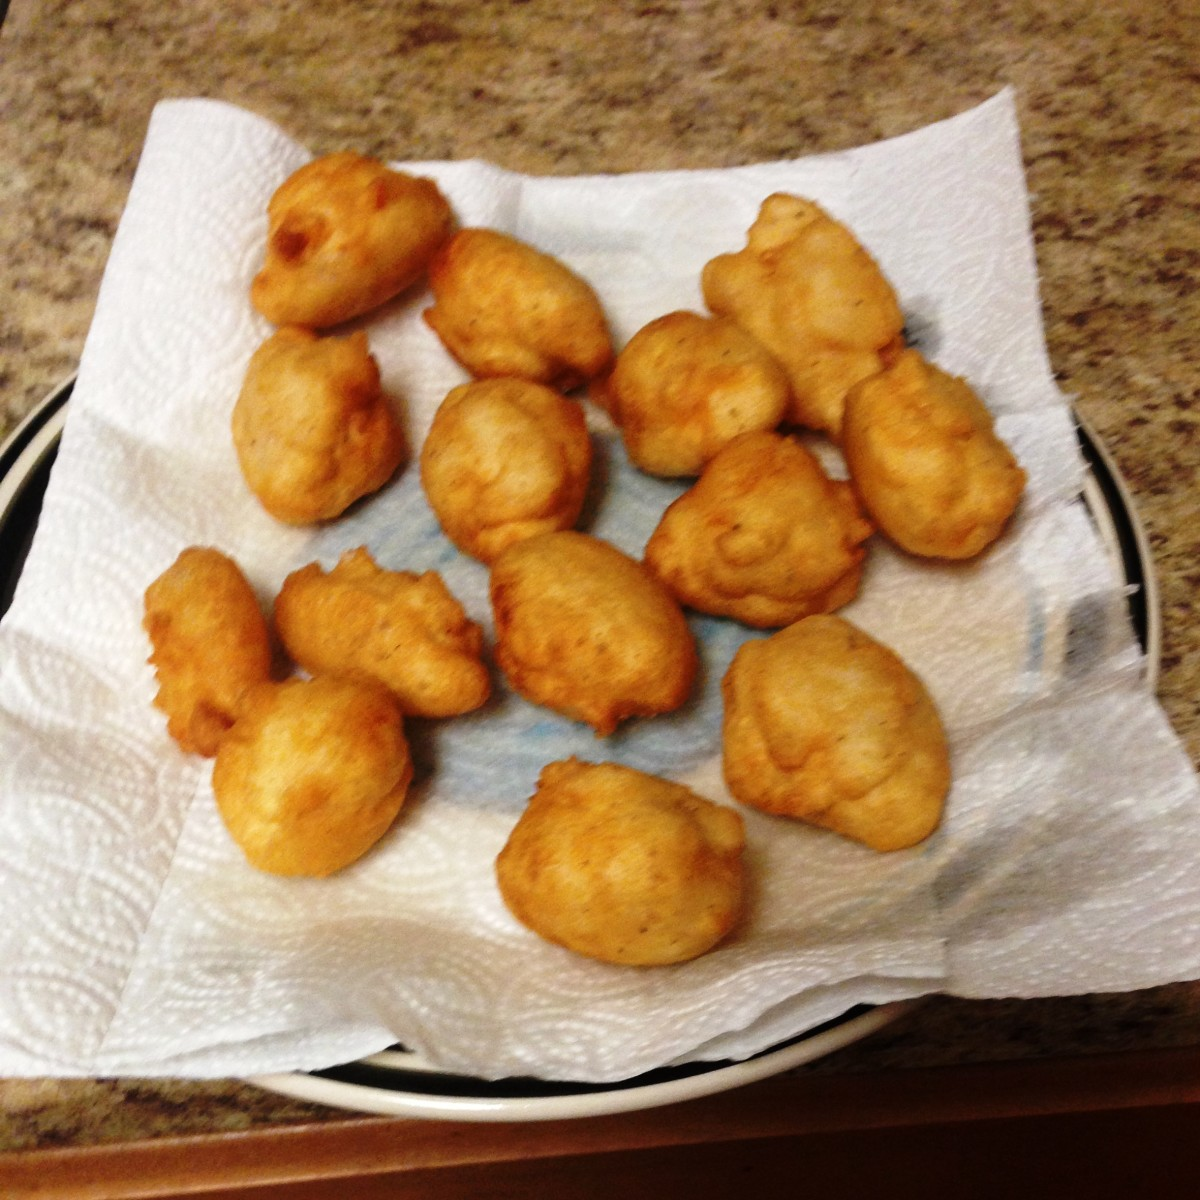 Drain the akara on a paper towel after frying.